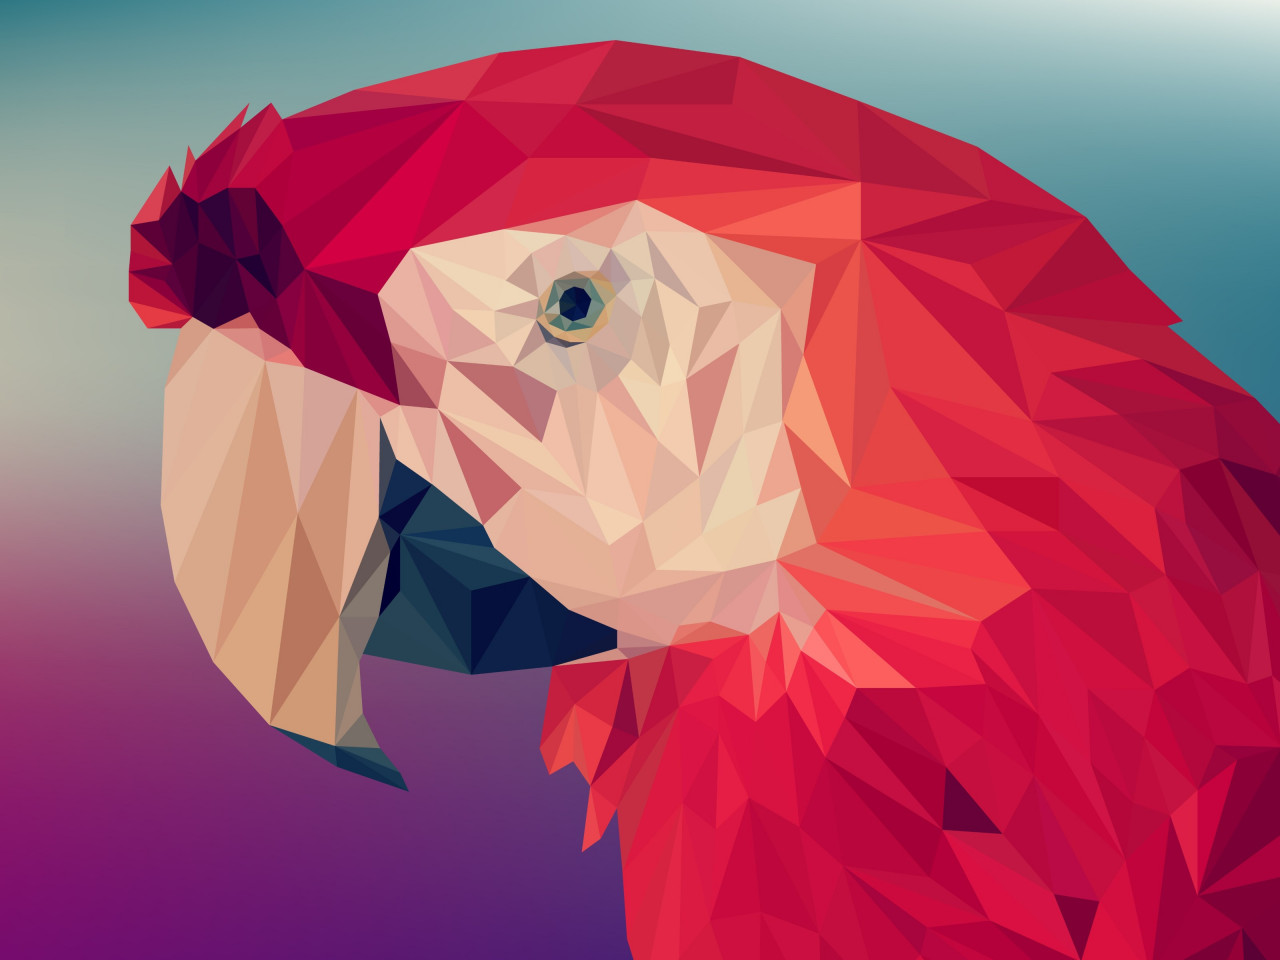 Low poly art: Red parrot wallpaper 1280x960